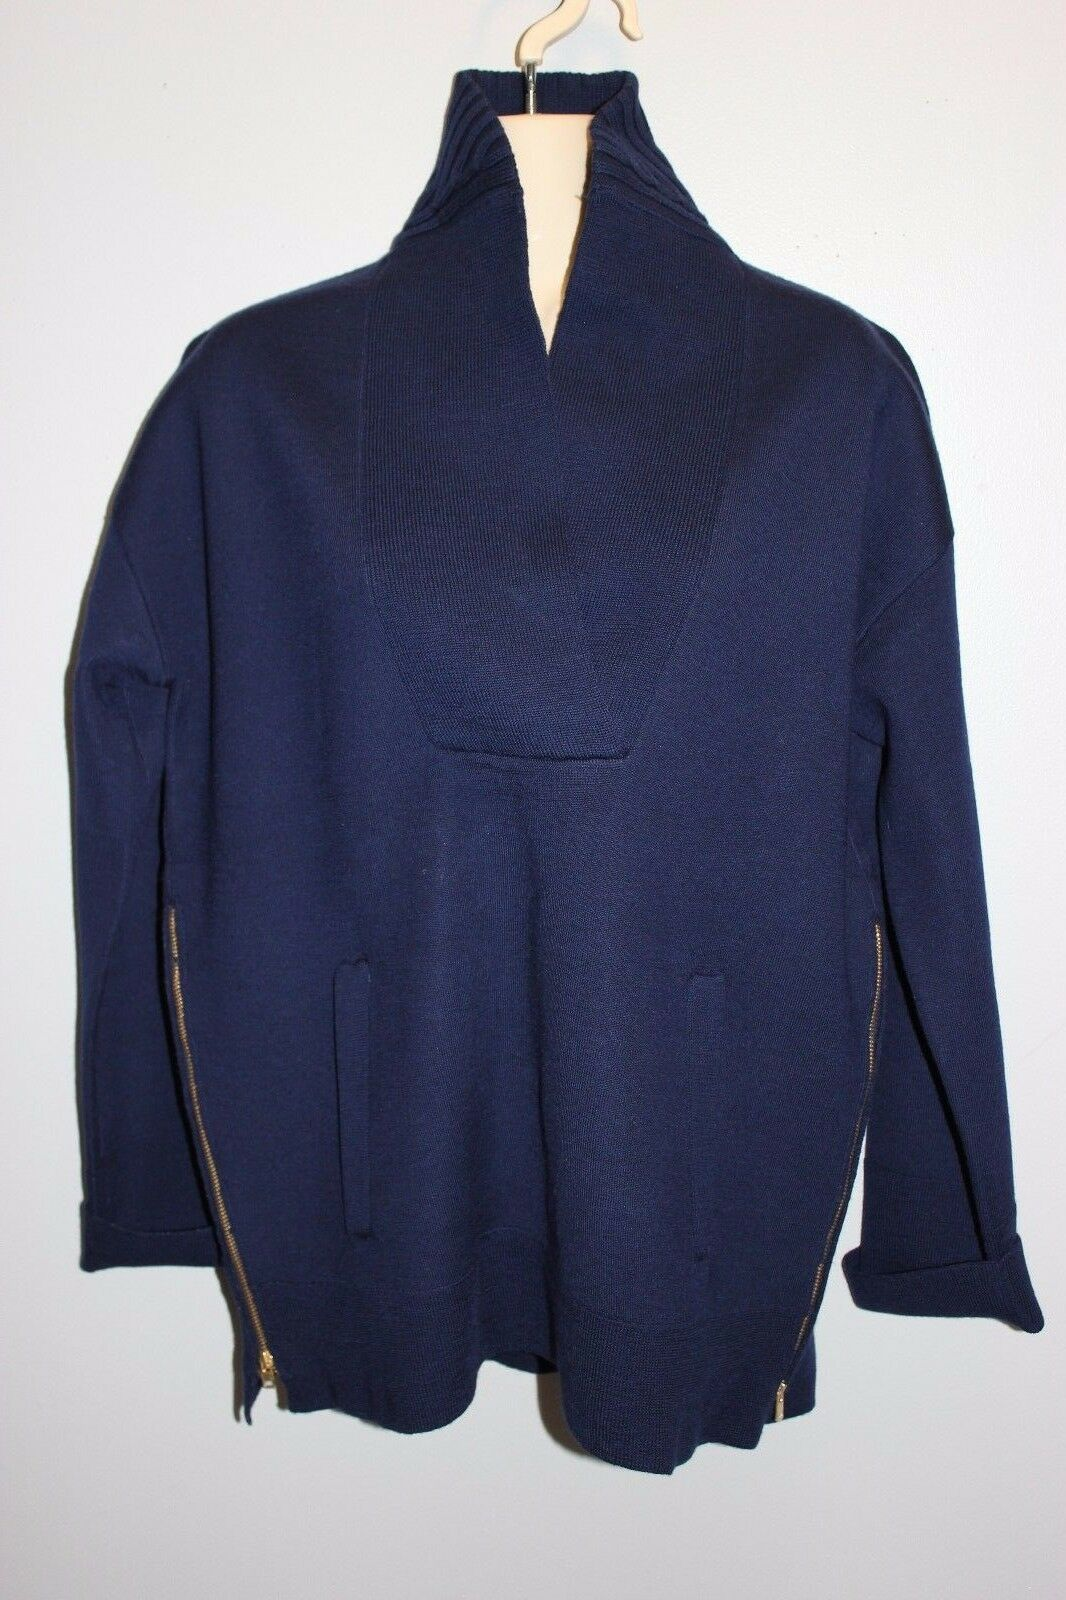 NEW J Crew  228 COLLECTION BONDED BONDED BONDED SHAWL POPOVER SWEATER Sz Small f5369  Indigo 26a42b